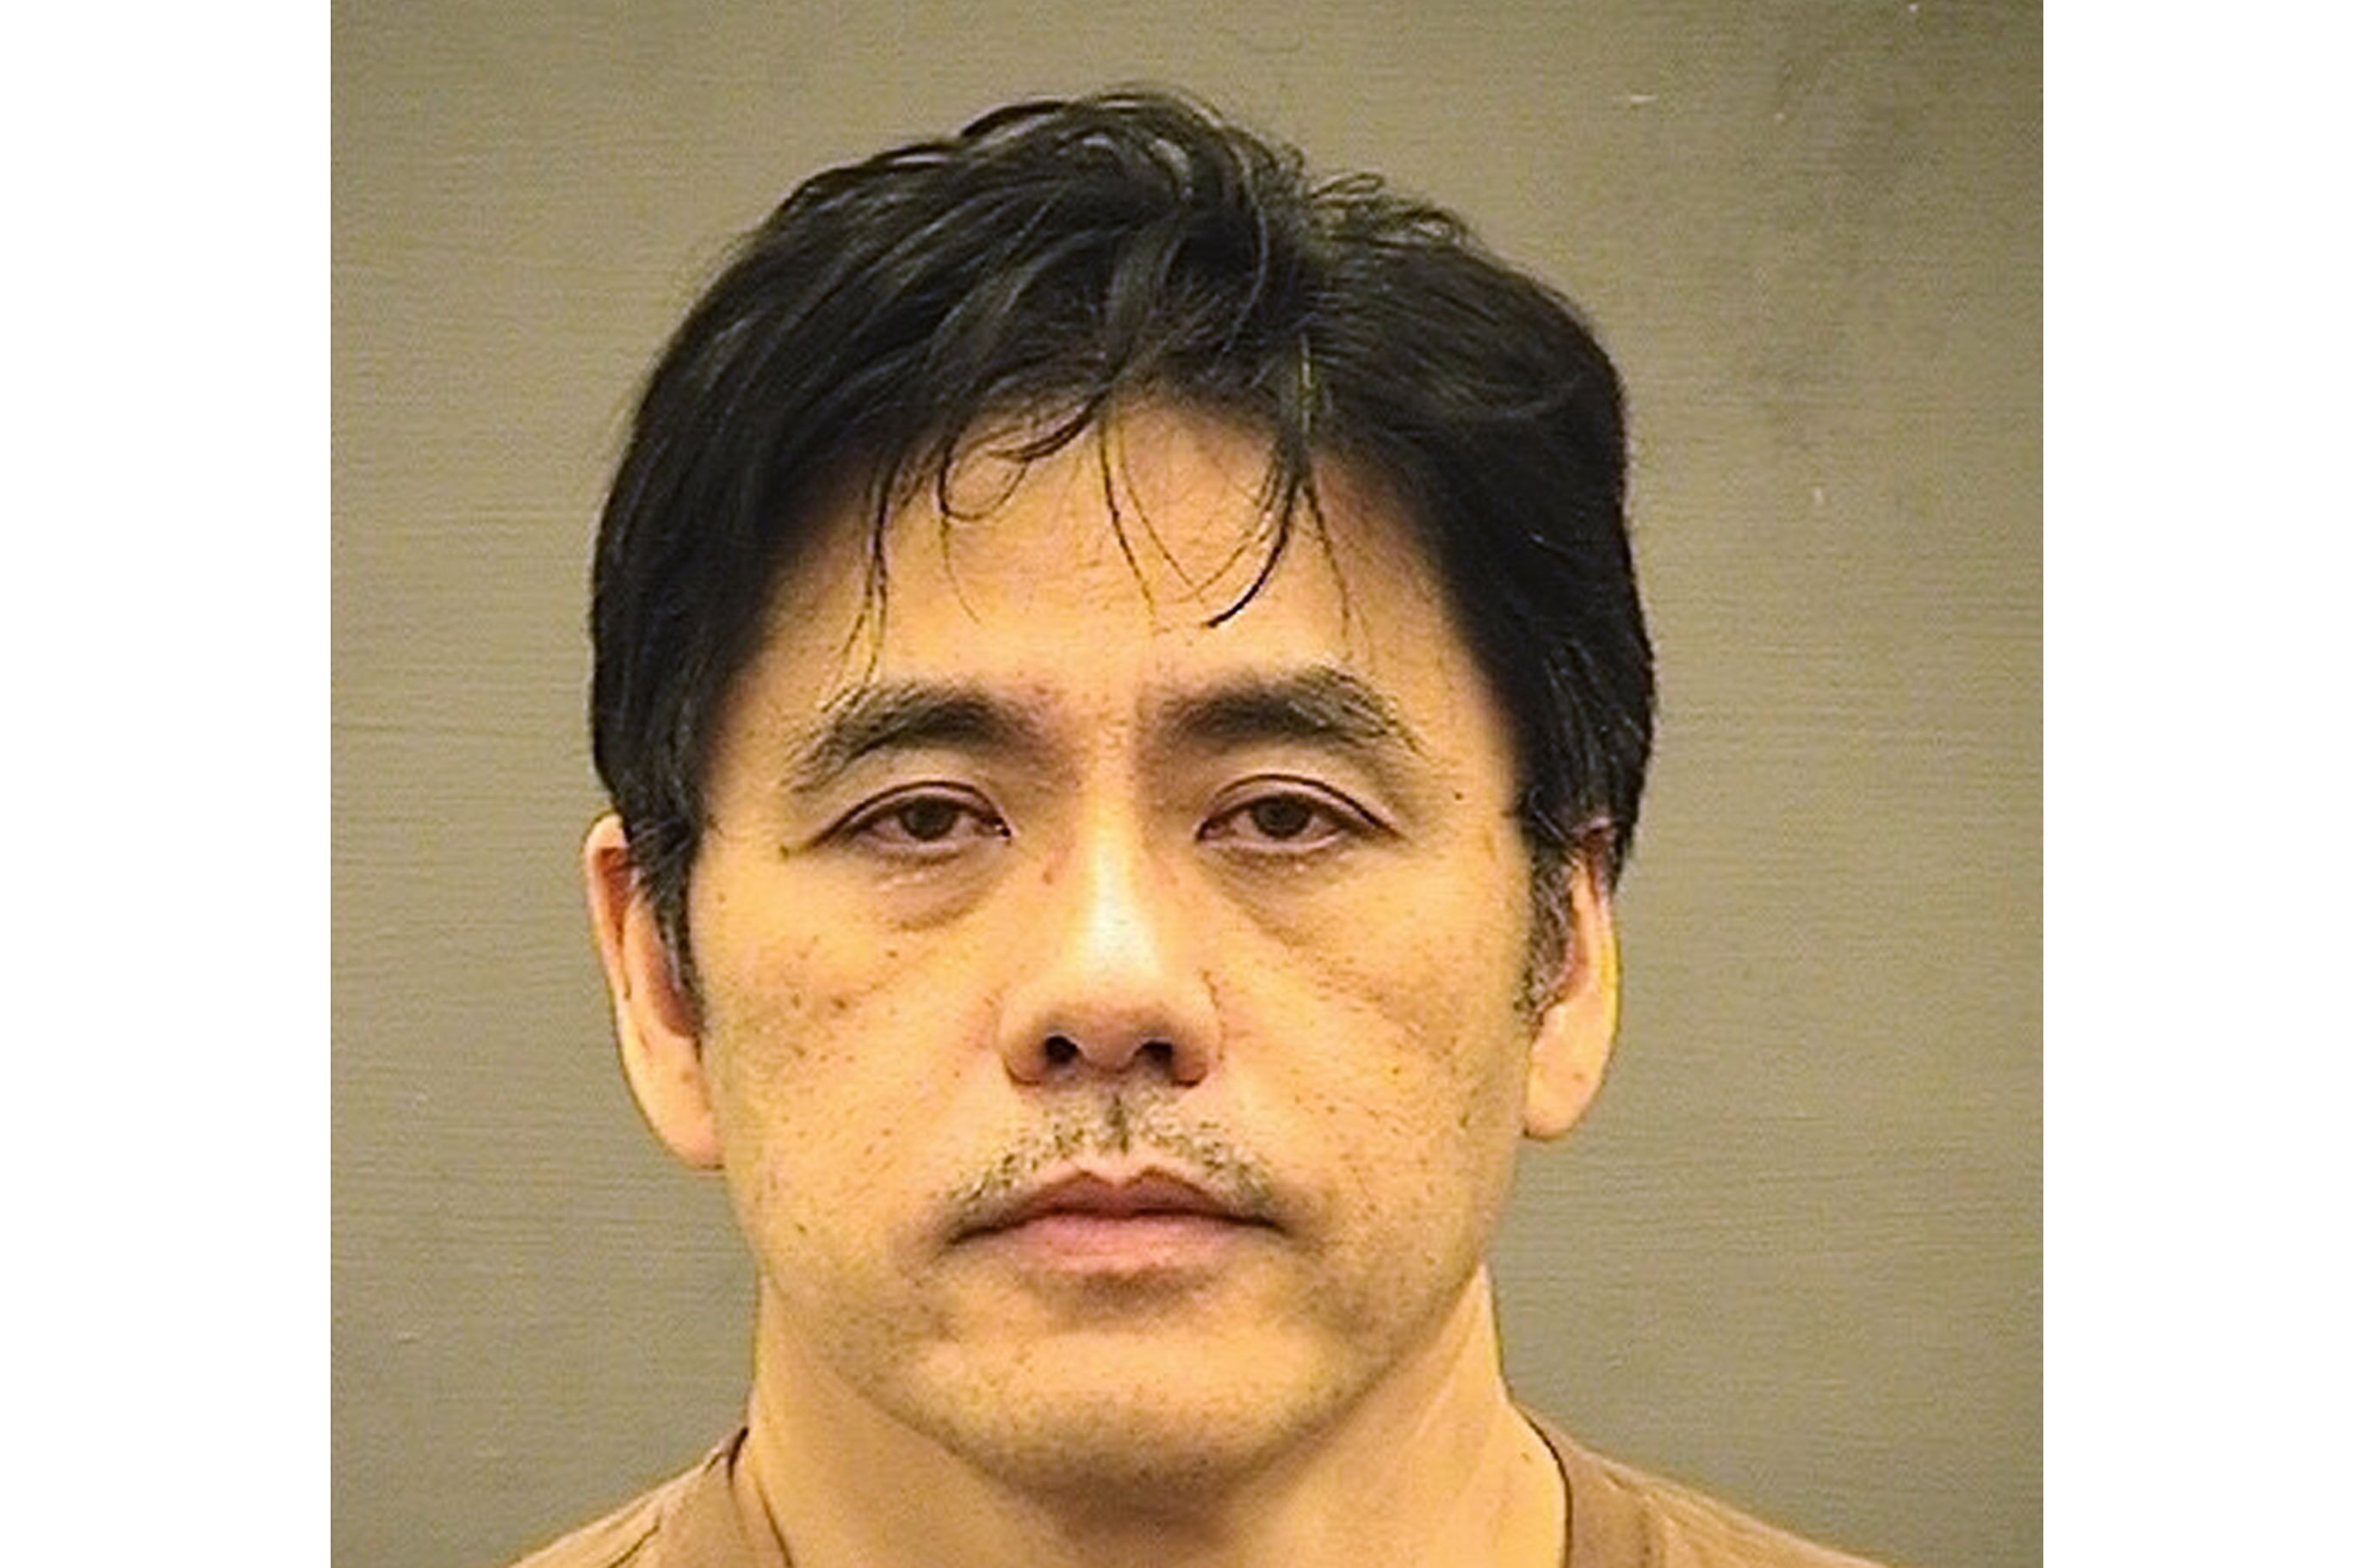 This undated file photo provided by the Alexandria Sheriff's Office shows Jerry Chun Shing Lee. The former CIA officer who pleaded guilty to an espionage conspiracy with China could be facing more than two decades in prison. Fifty-five-year-old Lee is scheduled for sentencing Friday, Nov. 22, 2019, in federal court in Alexandria, Va.